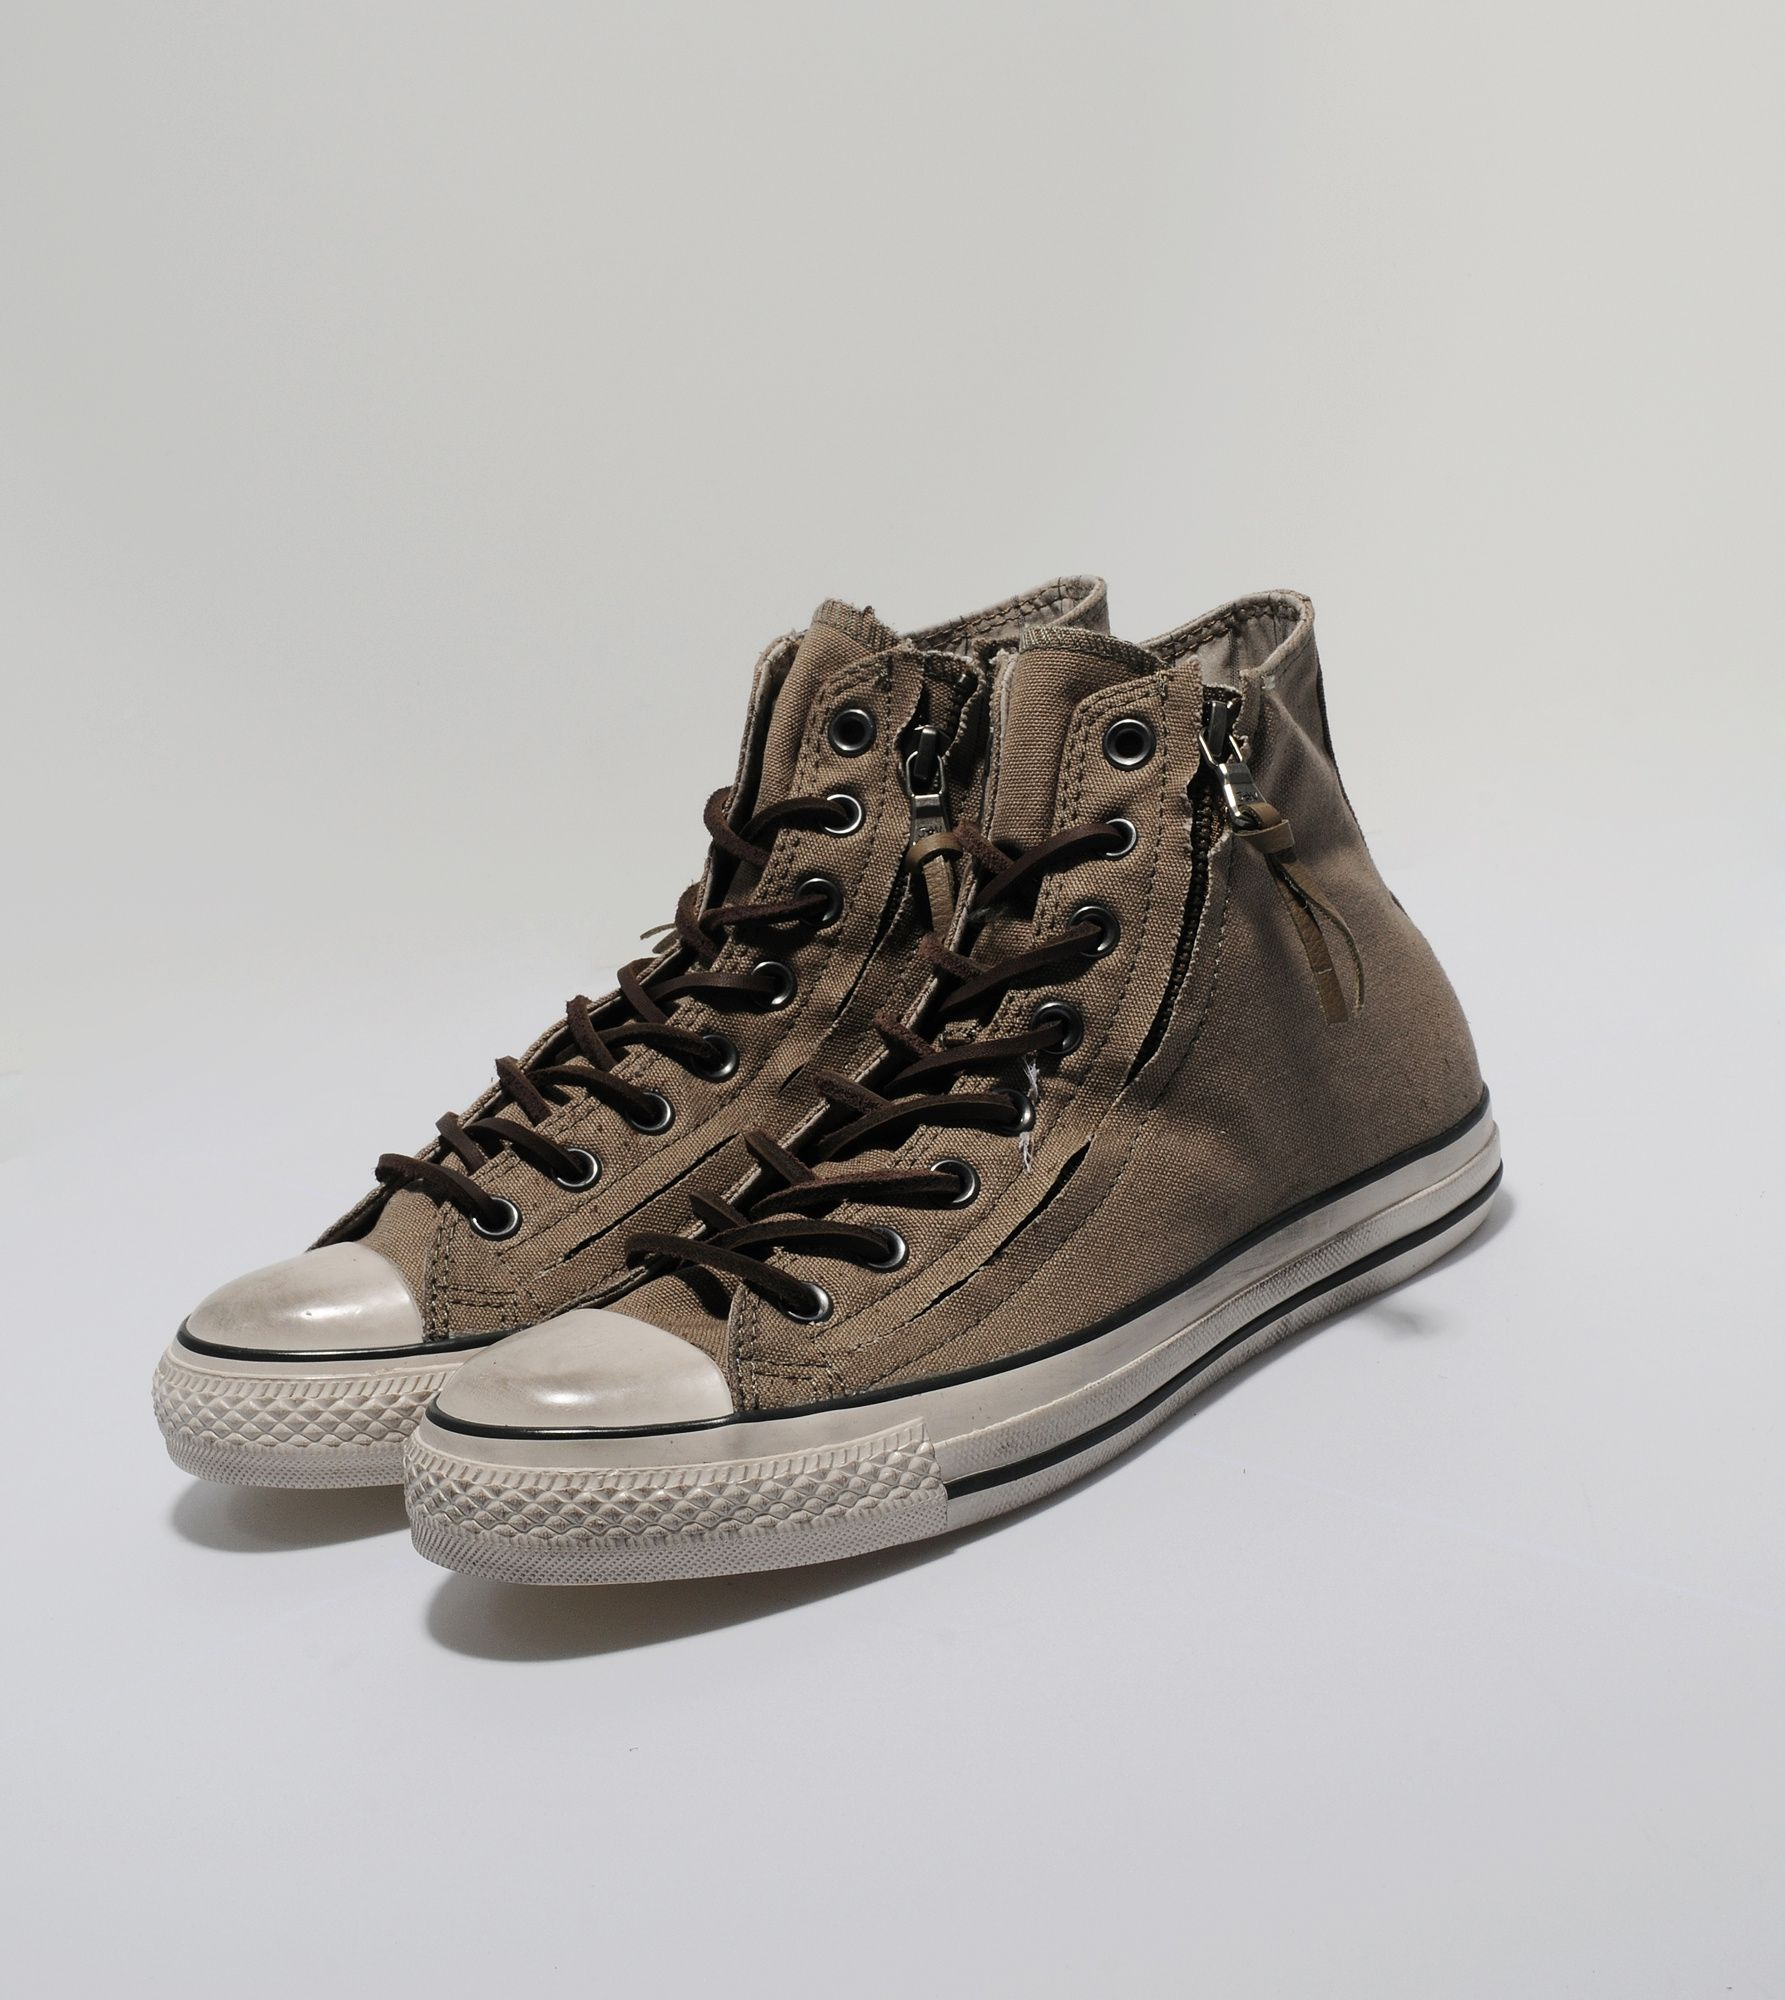 dbbafce286c4f0 hot all star embossed chuck taylor by john varvatos converse 66bdd 3af6c